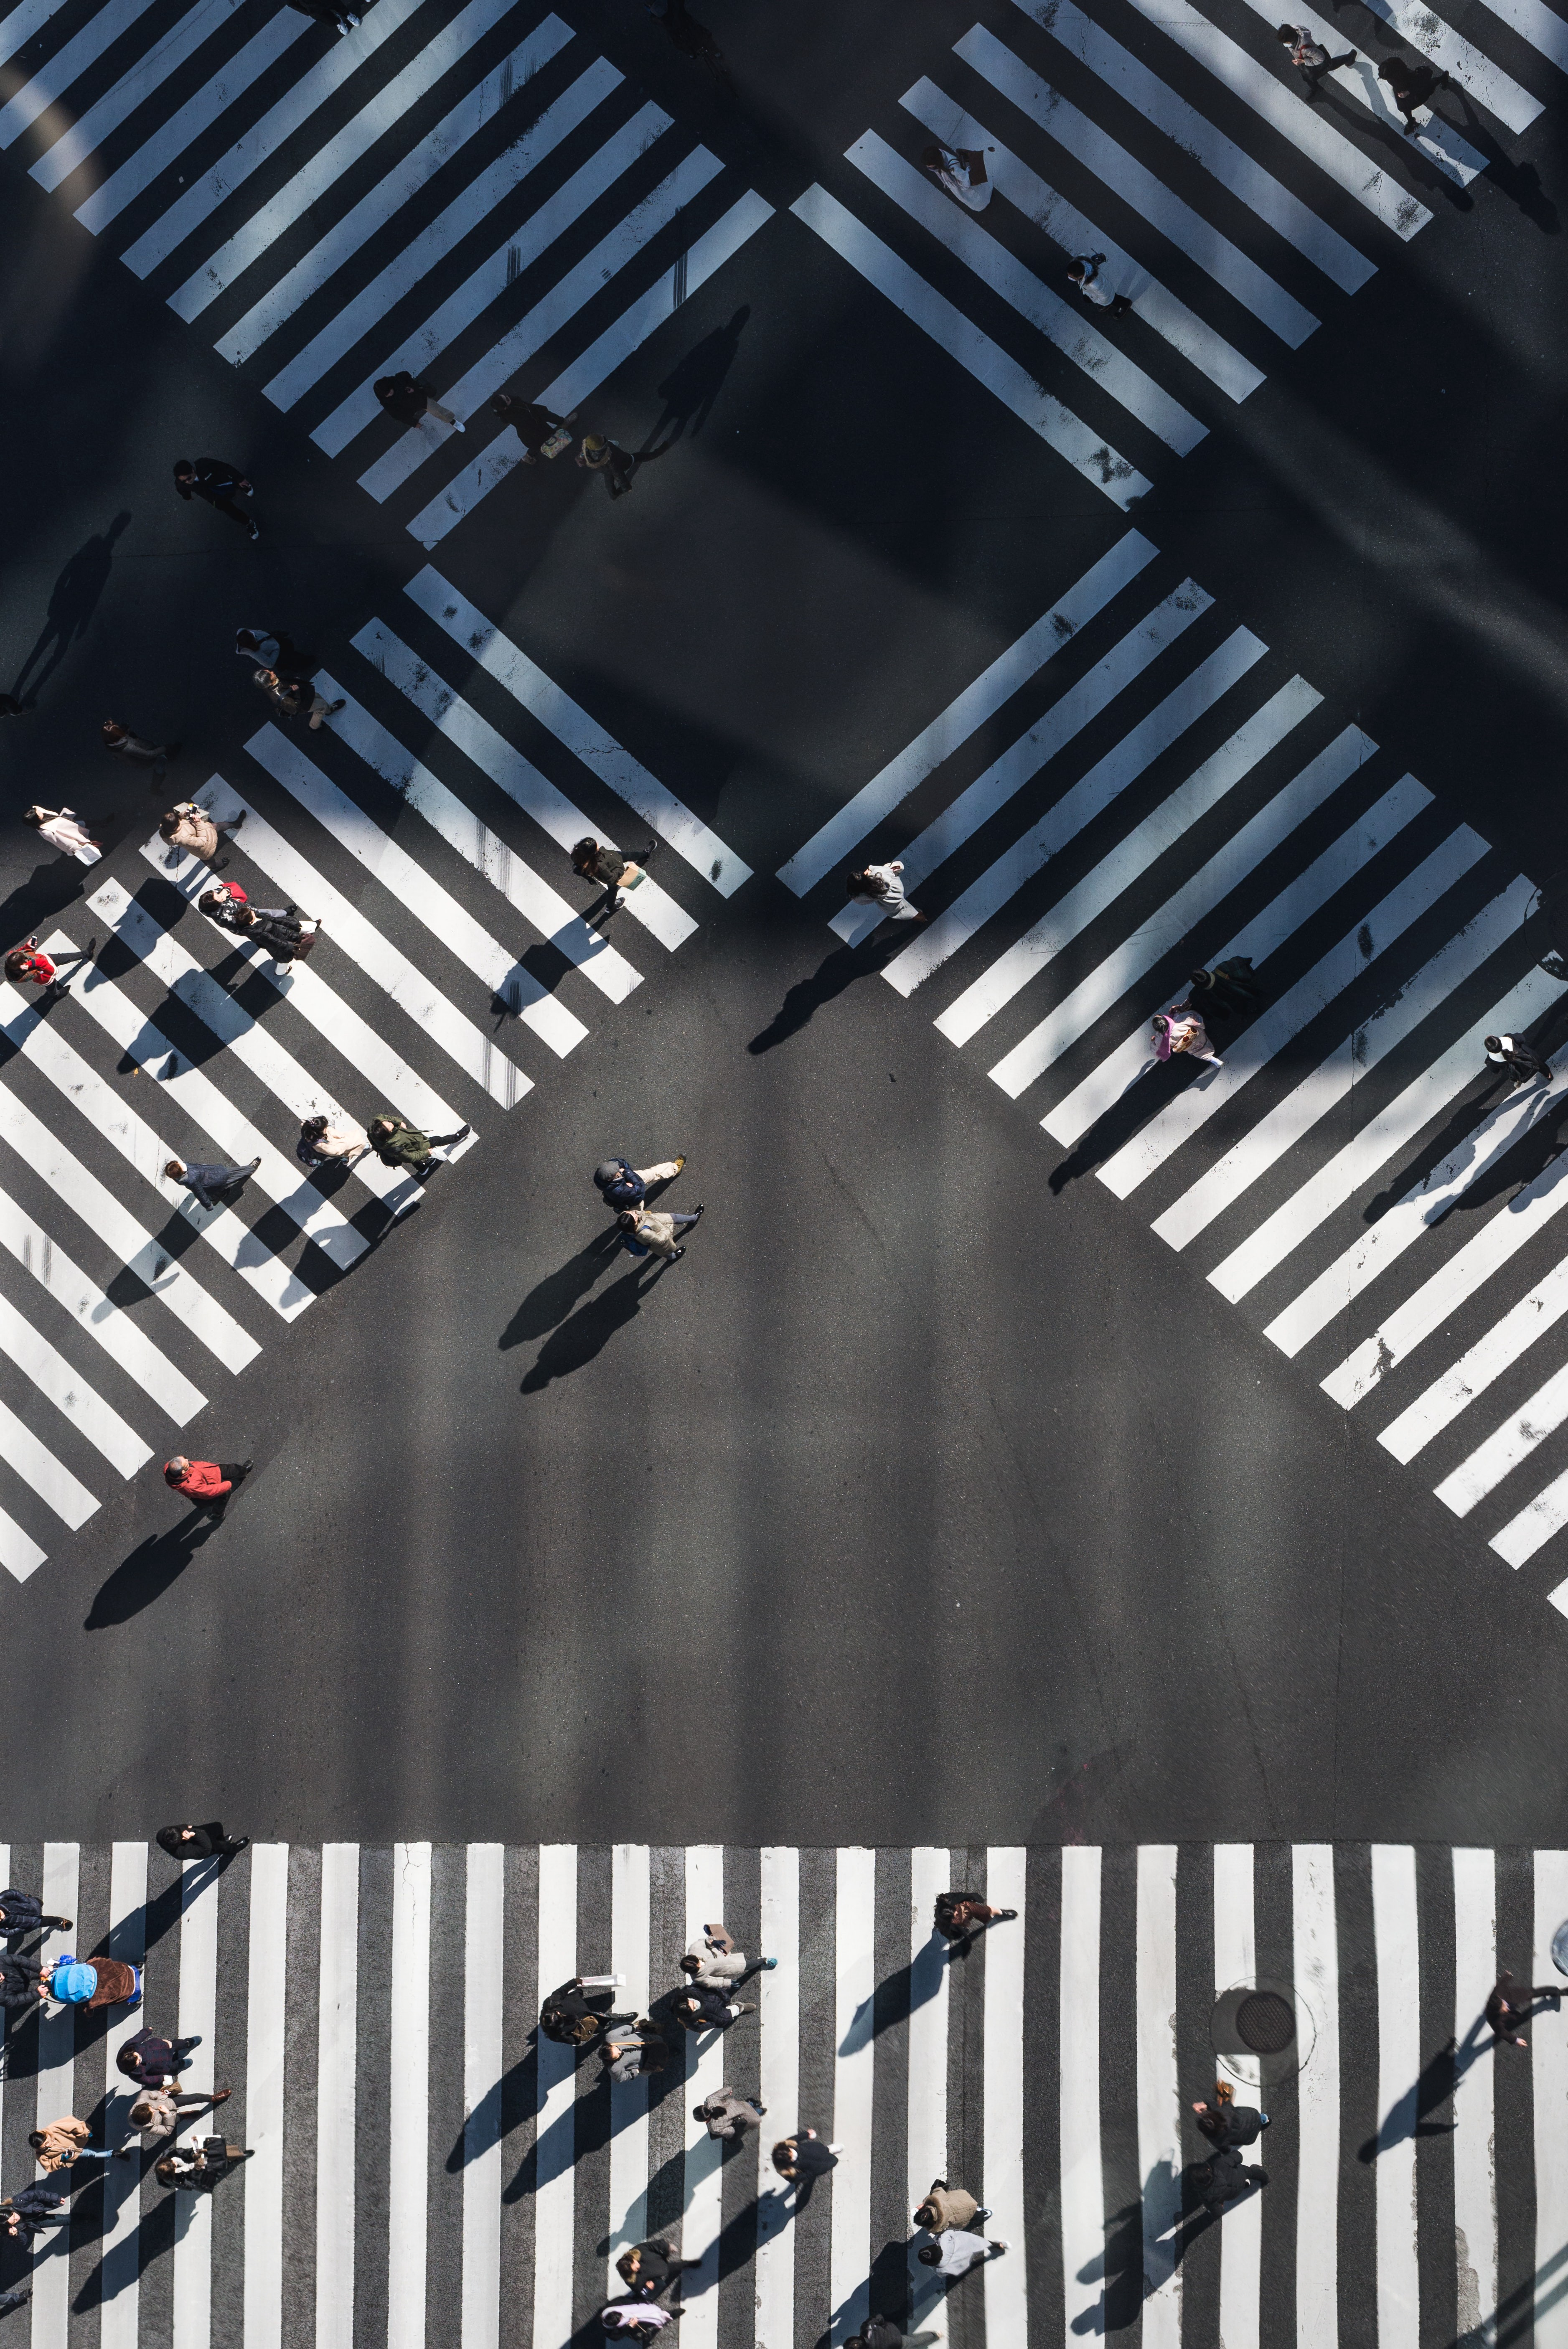 Intersections and people walking.